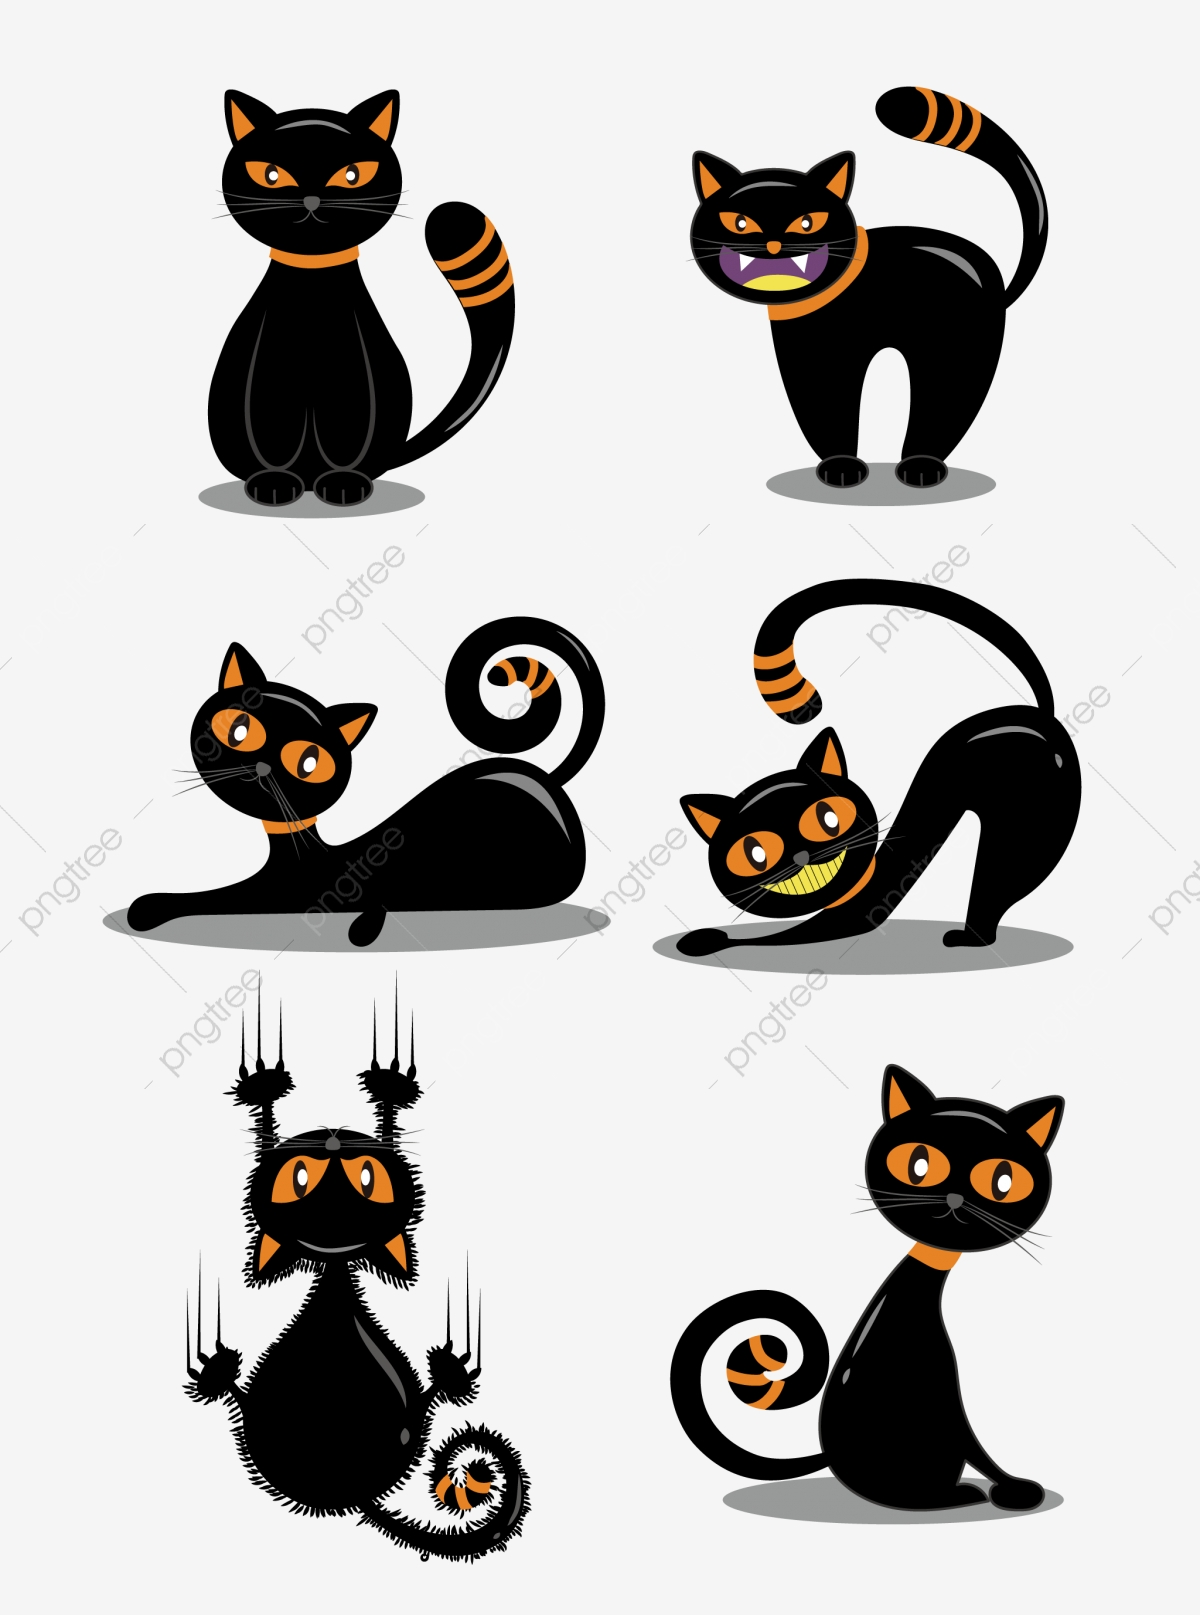 Cartoon Cute Halloween Funny Black Cat Illustration Element Cartoon Lovely Halloween Png And Vector With Transparent Background For Free Download